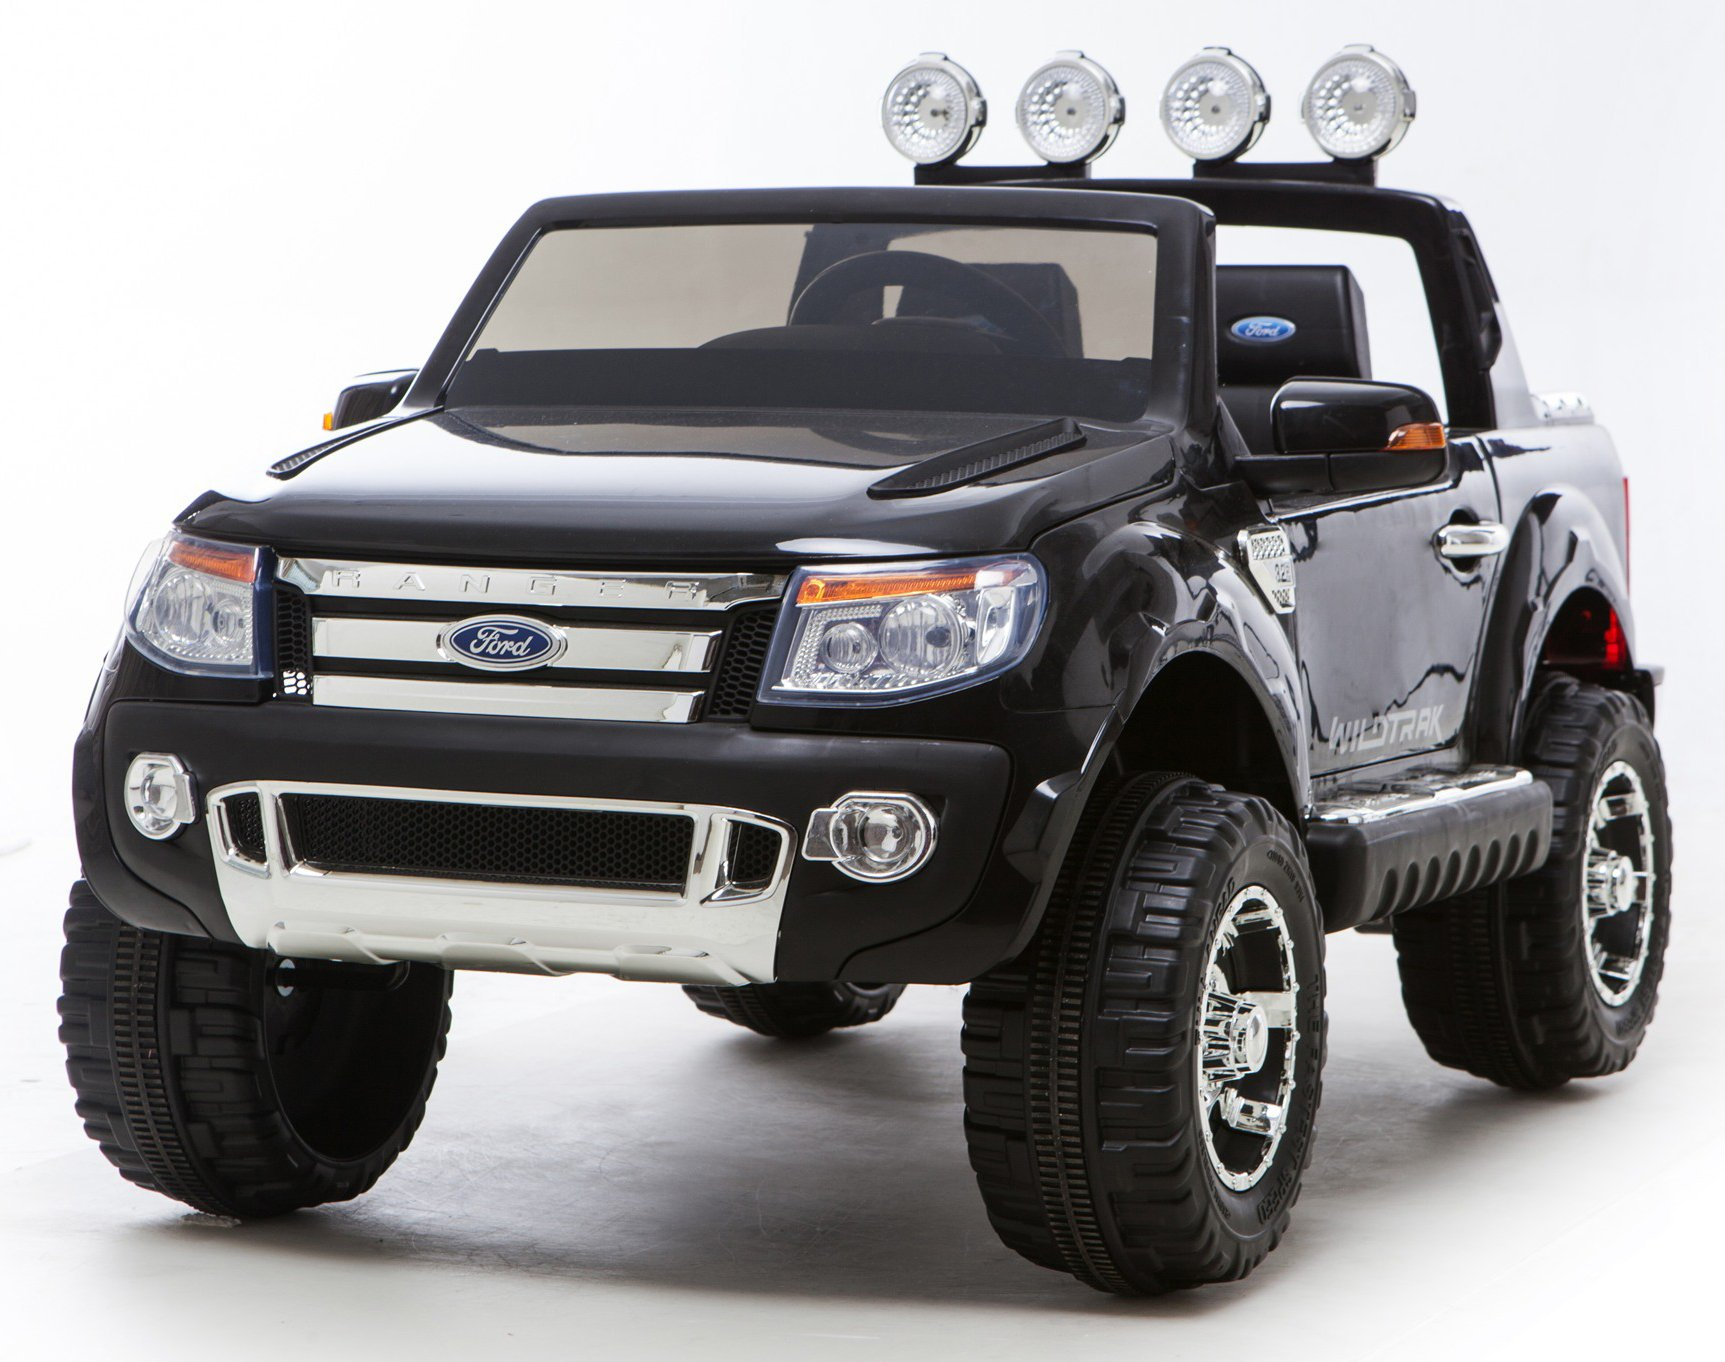 black ricco licensed ford ranger 4x4 kids electric ride on car with remote control led lights sale